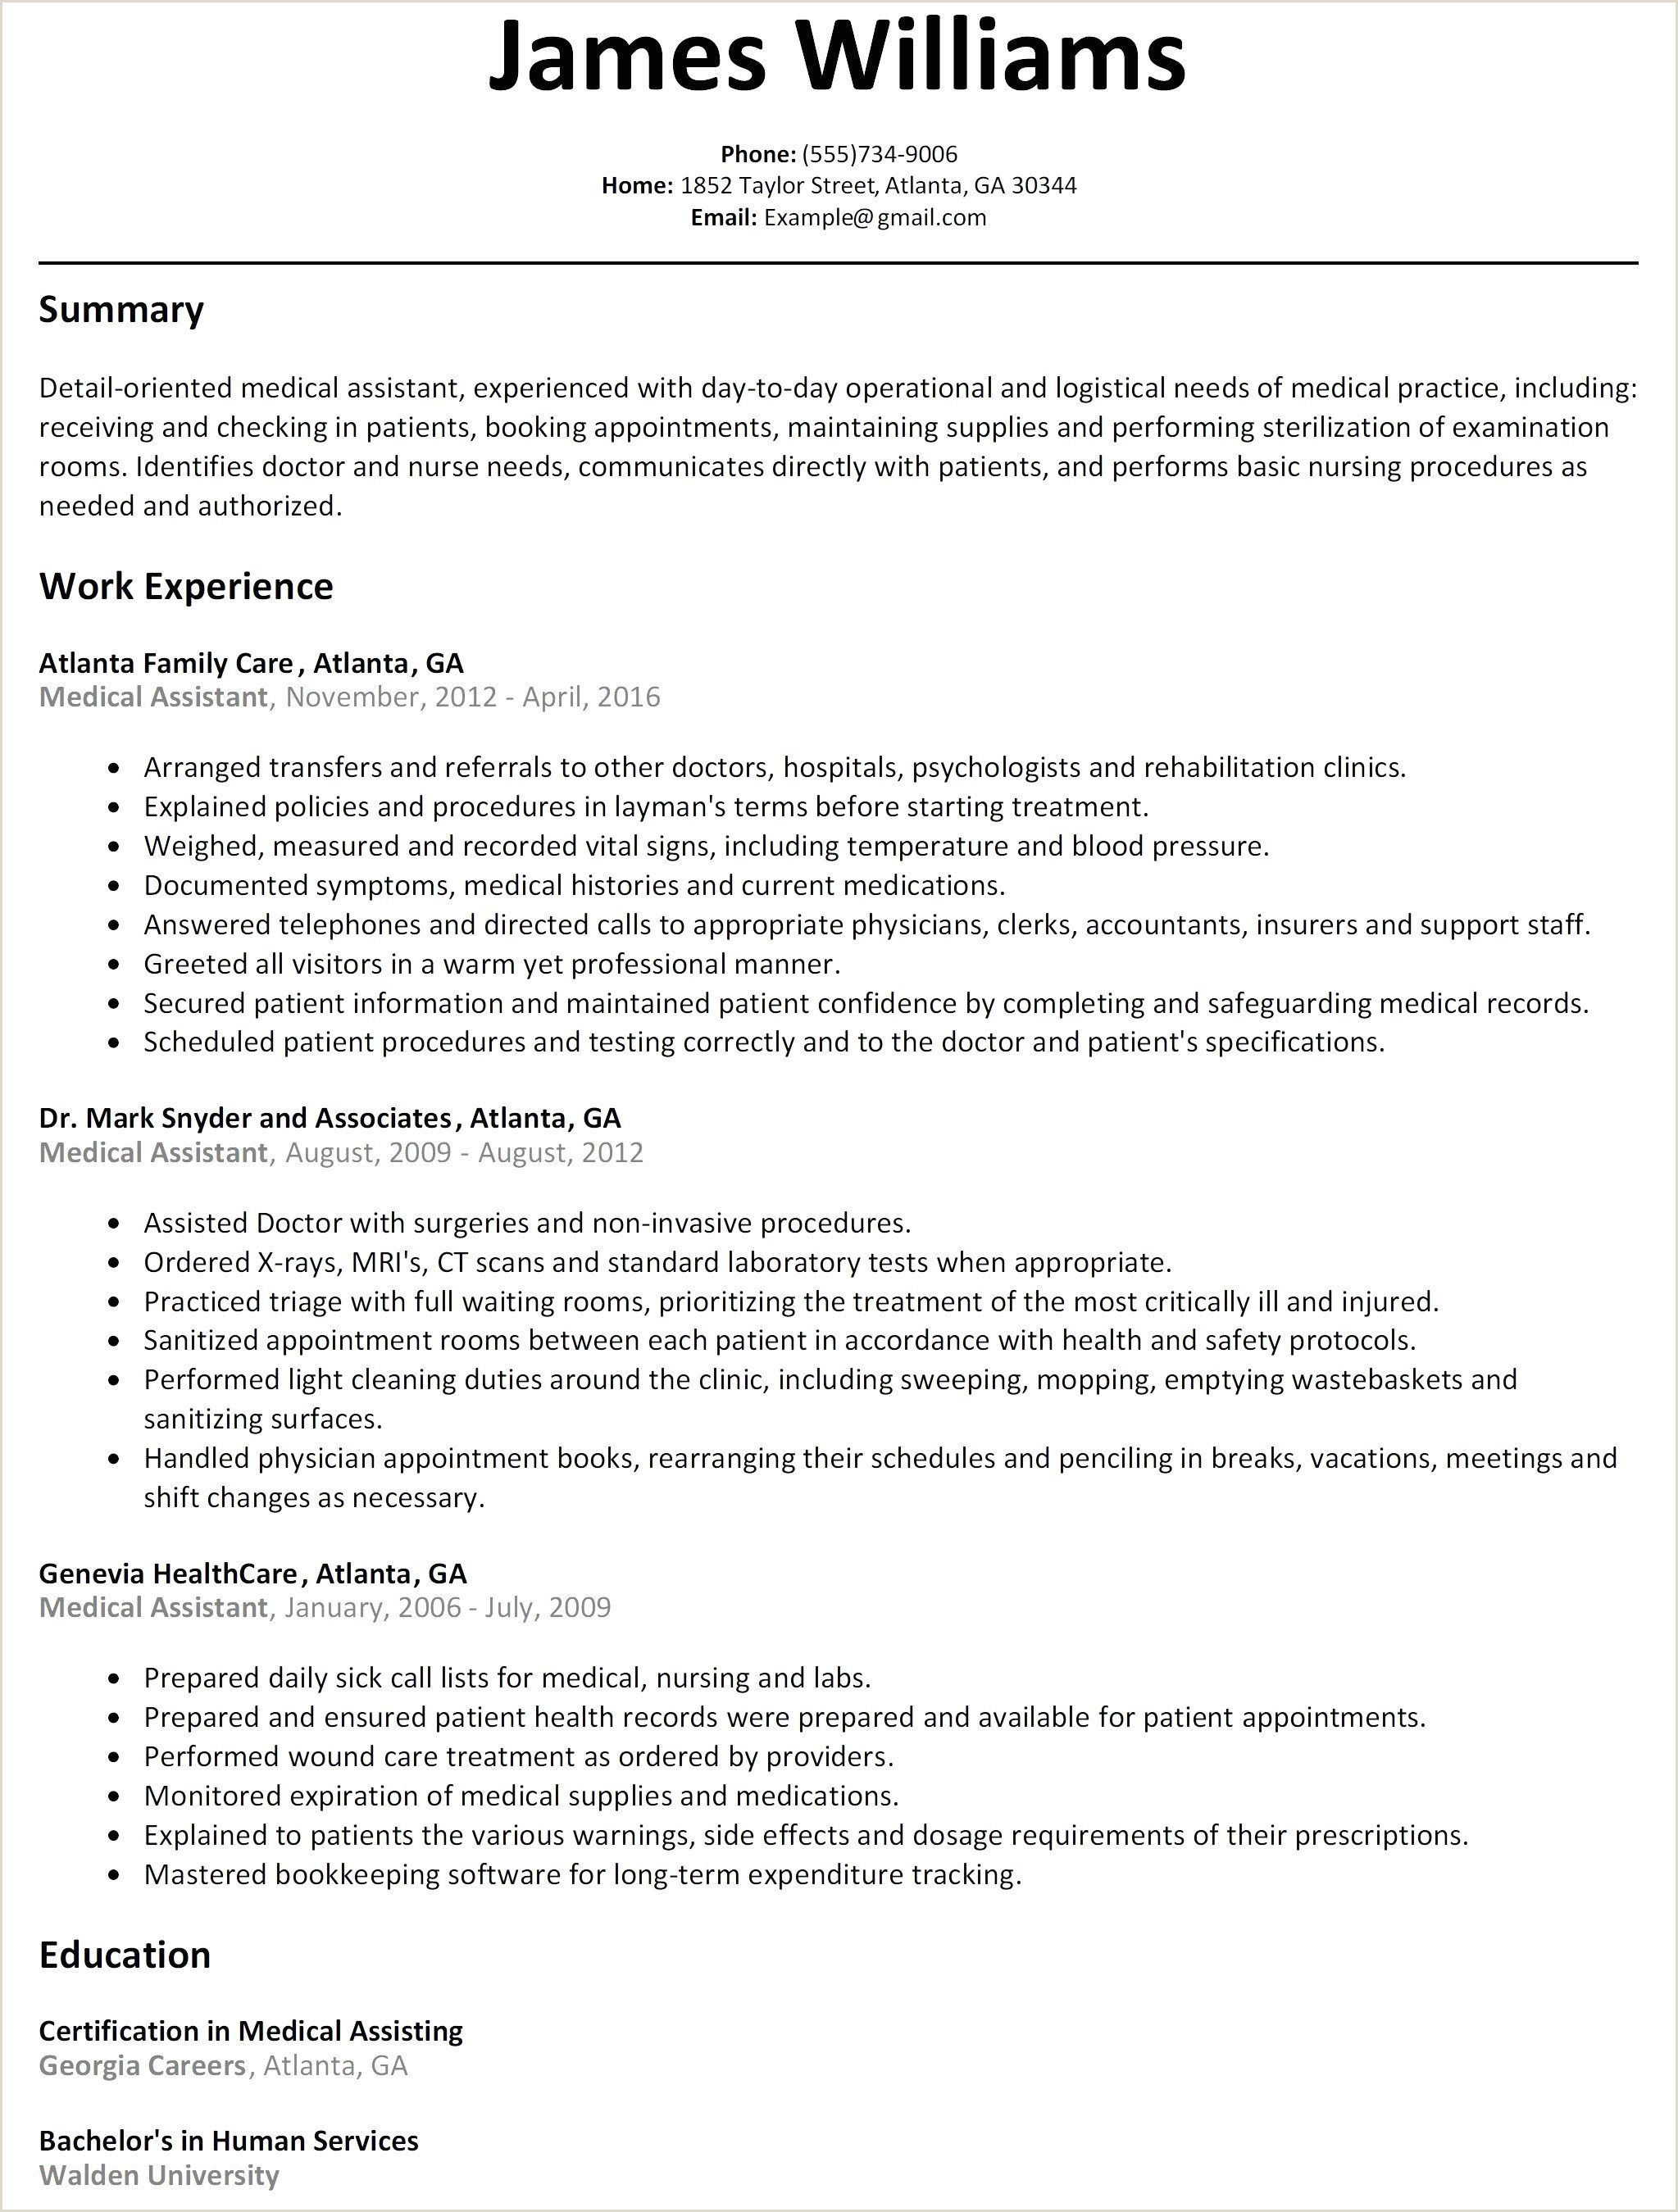 Counselor Resume Examples Junior Java Developer Resume Unique Counselor Resume